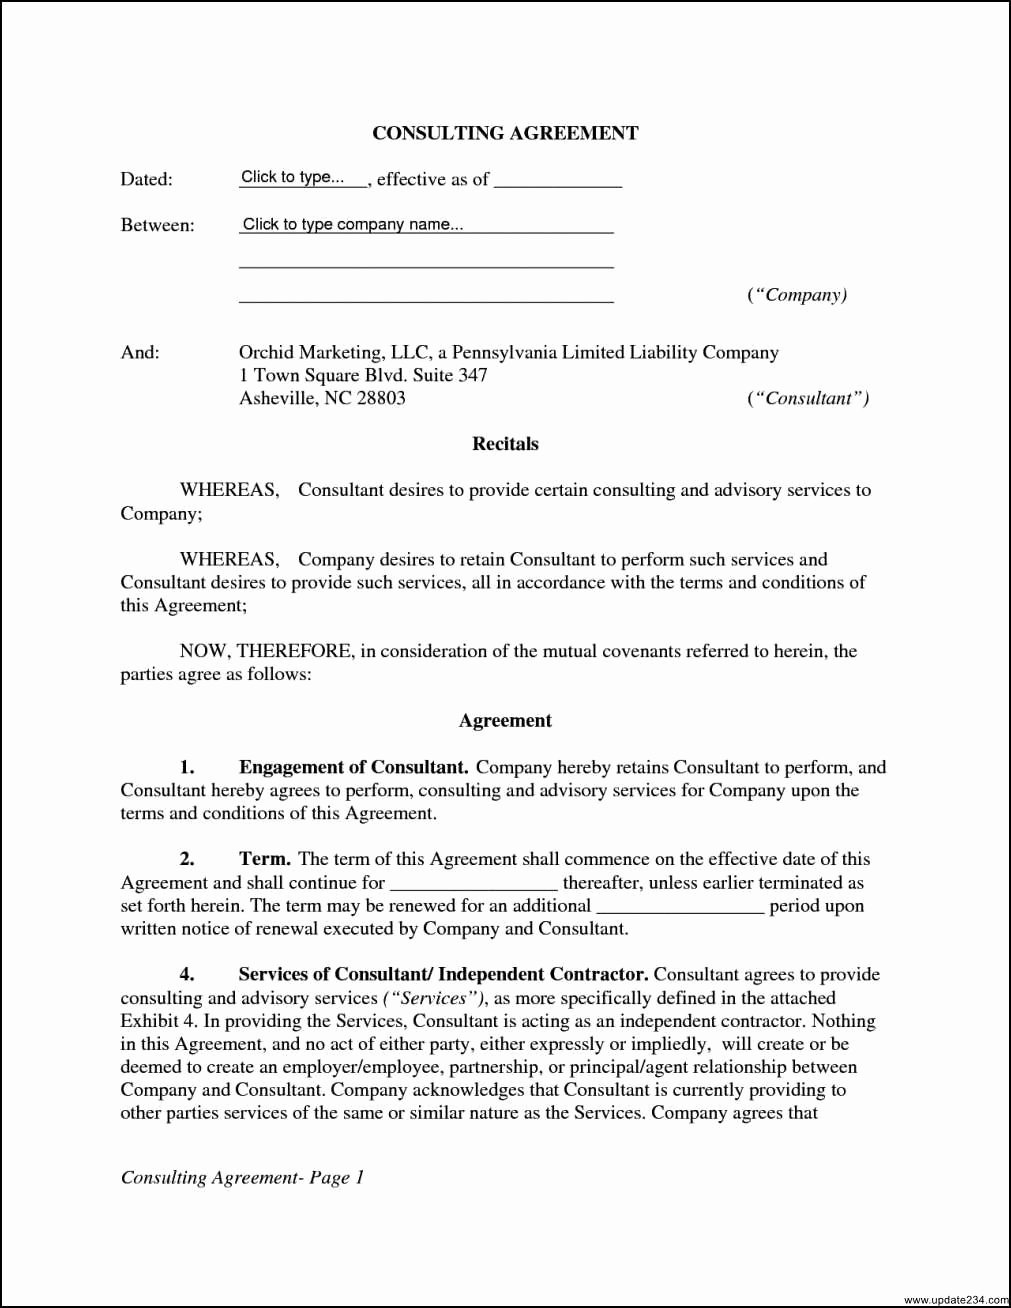 Simple Consulting Agreement Template Beautiful 14 Fast Free Consulting Agreement Template Word Wu